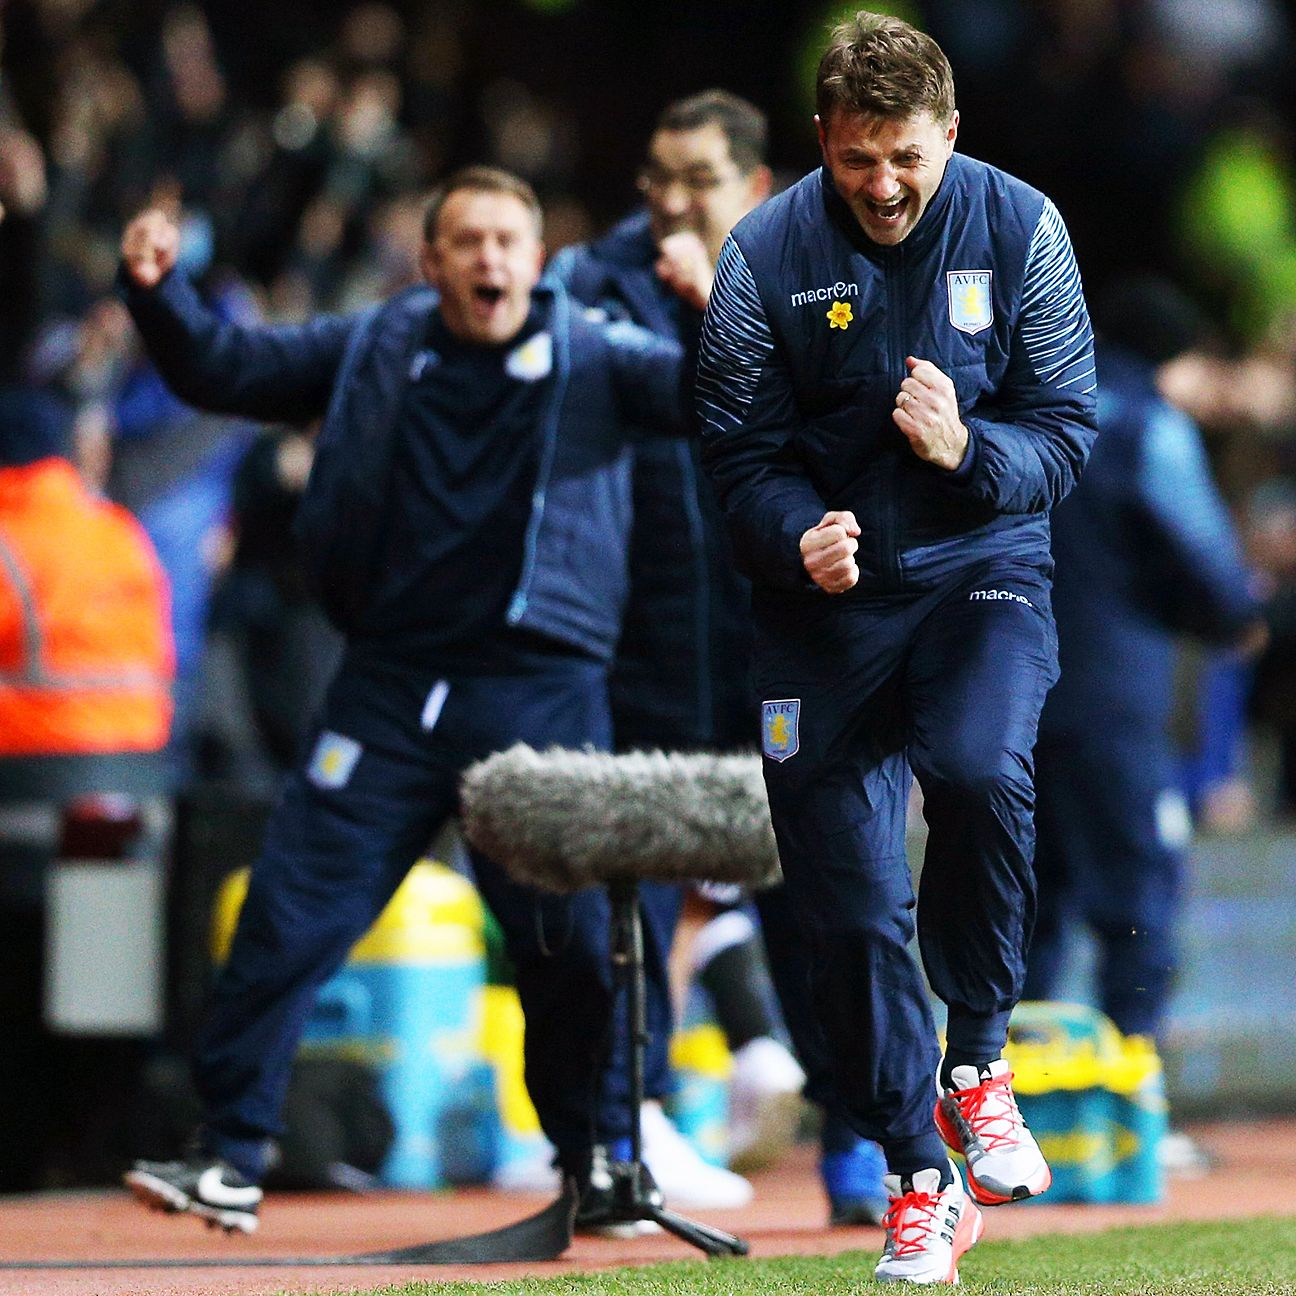 Aston Villa fans will be hoping that the fist-pumping from manager Tim Sherwood continues this weekend versus Sunderland.